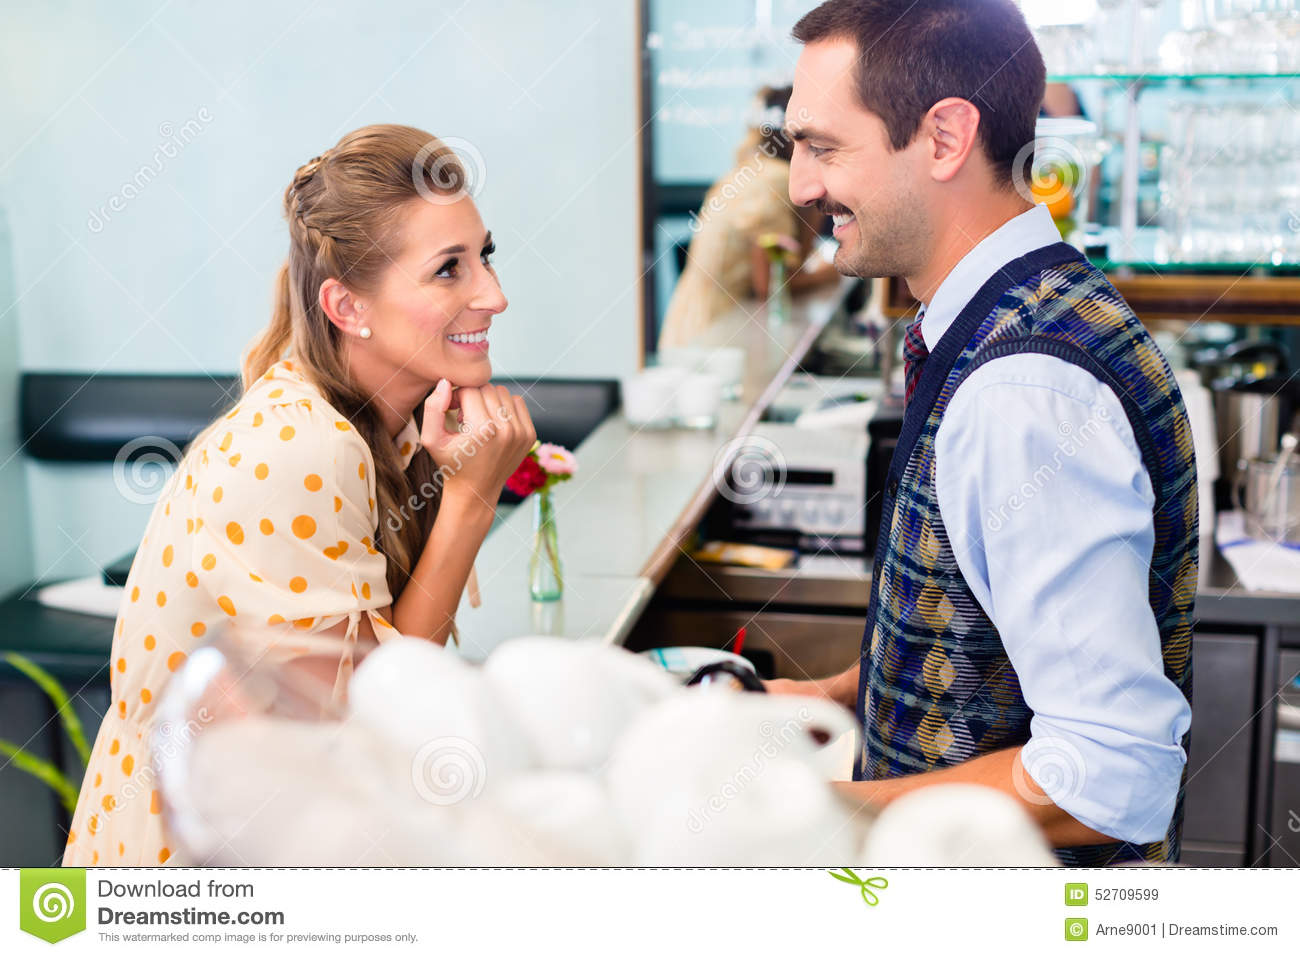 how to tell if a barista is flirting